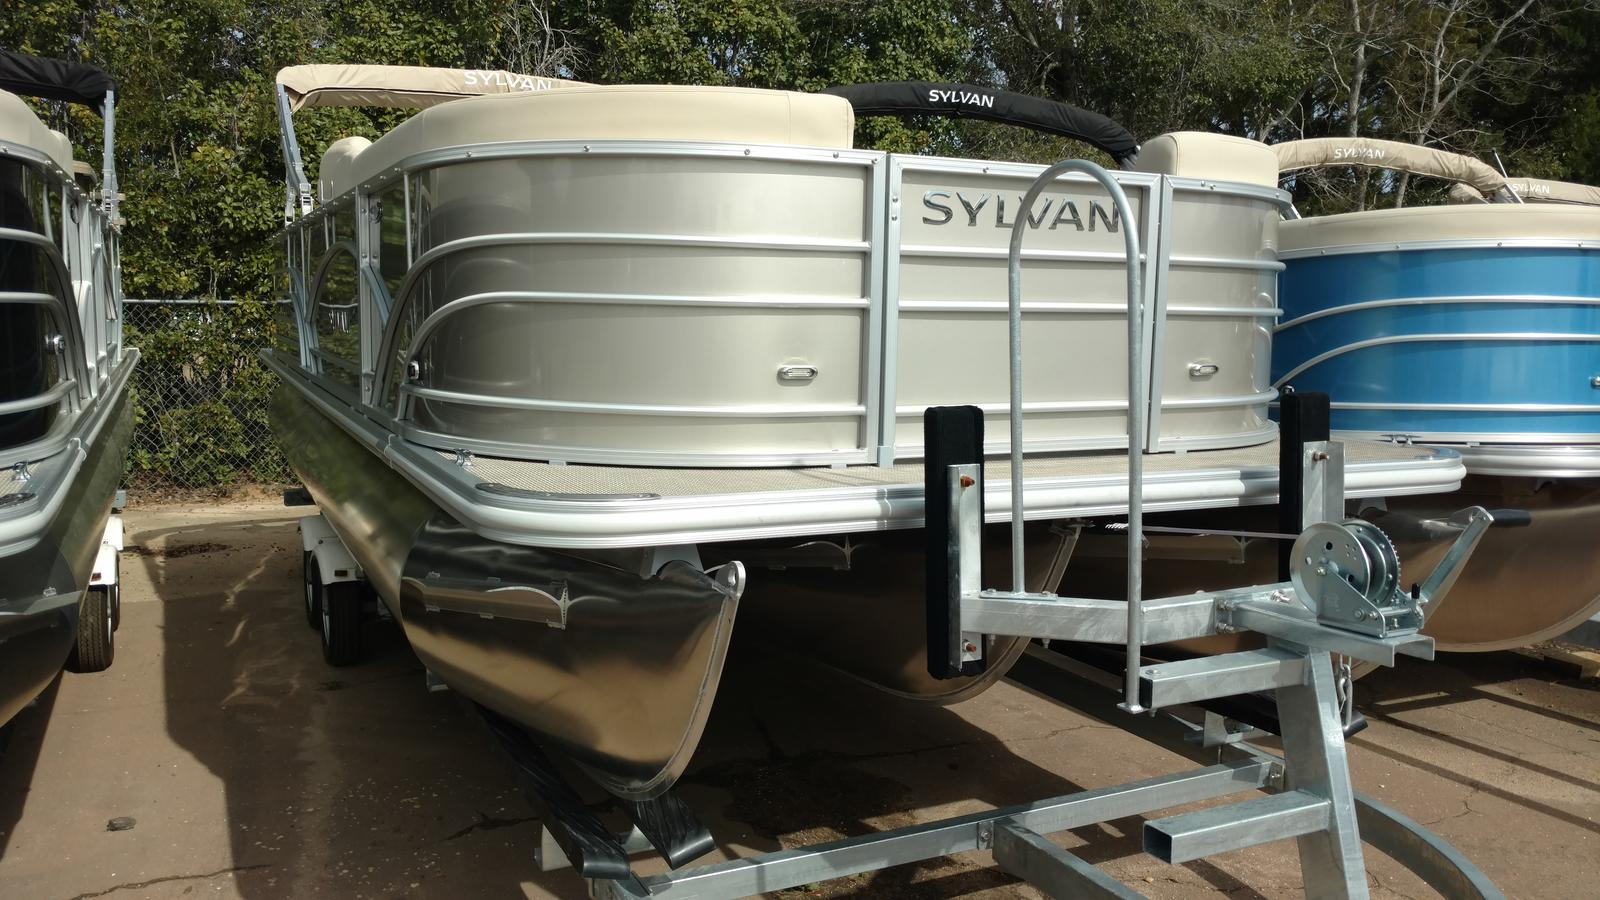 Sylvan mirage fish 8522 party fish boats for sale for Syvlan